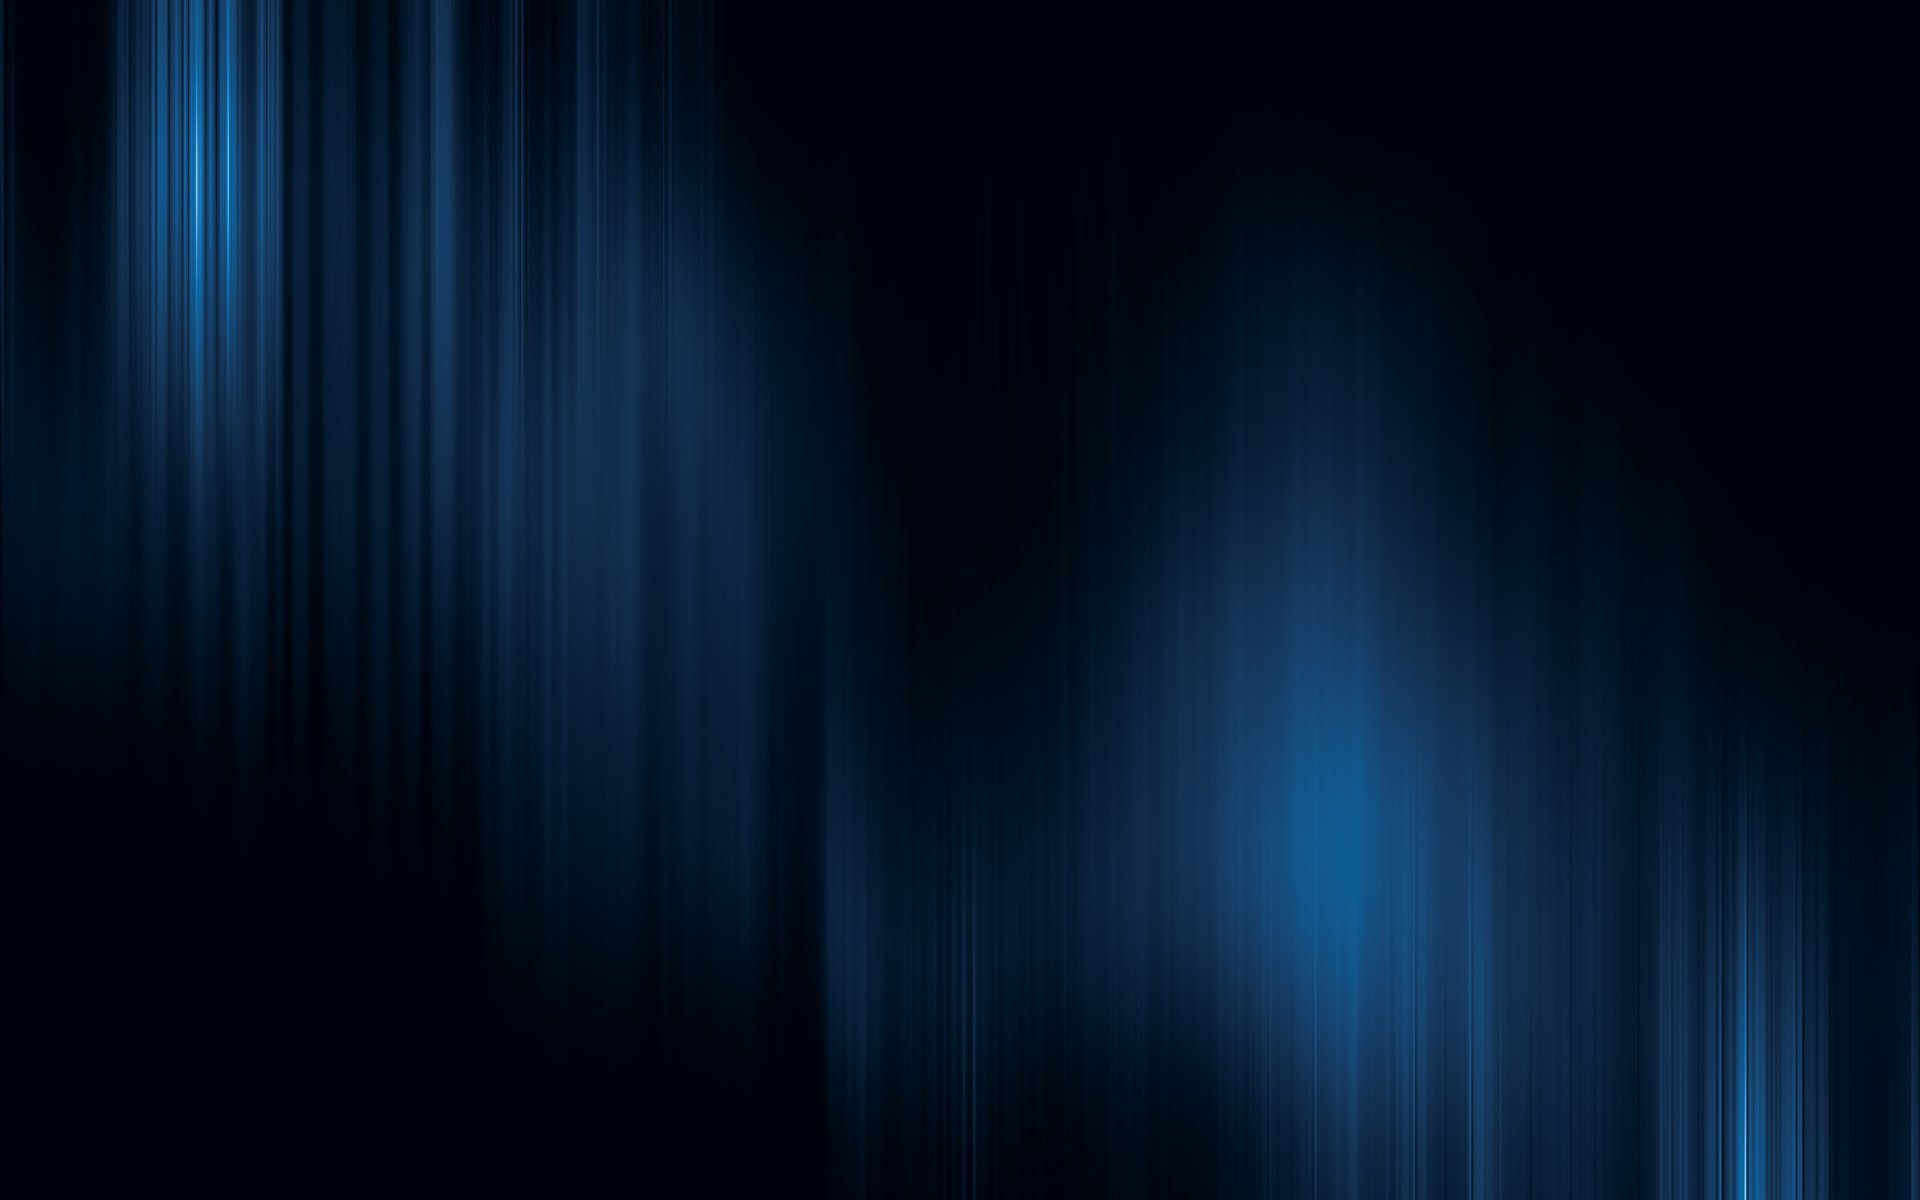 HD Black and Blue Backgrounds | PixelsTalk Net